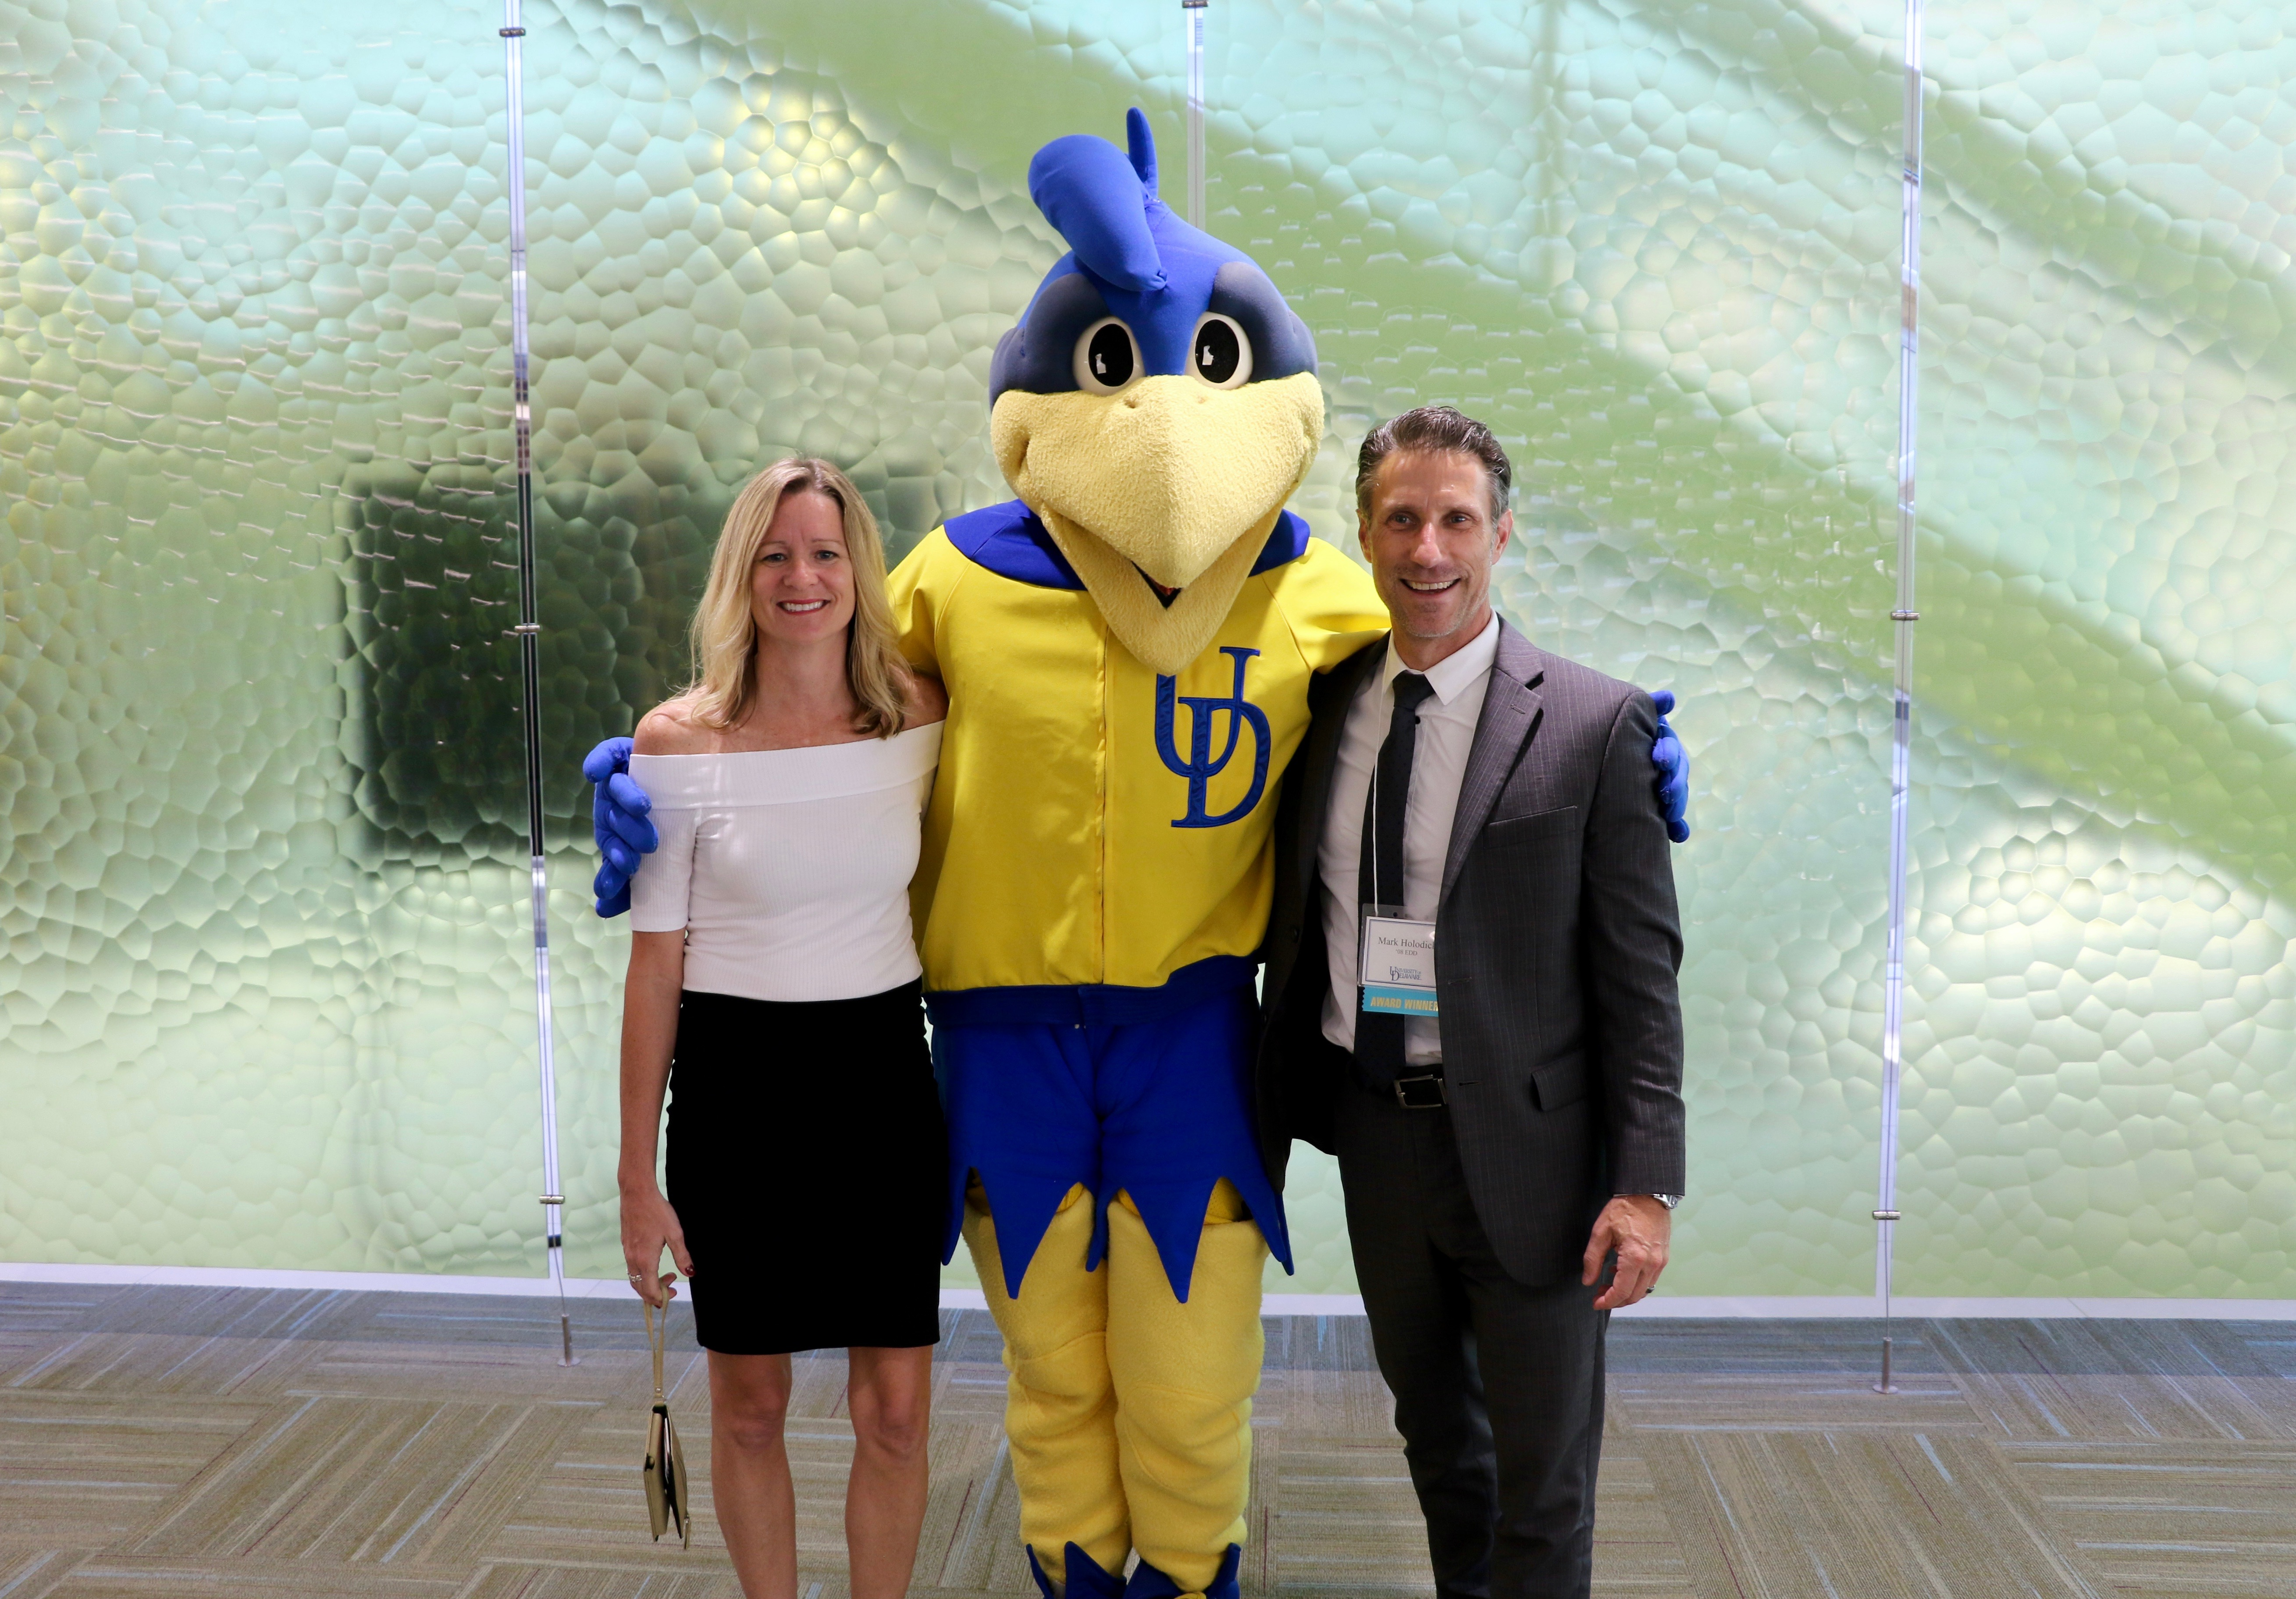 ud-blue-hen-faculty